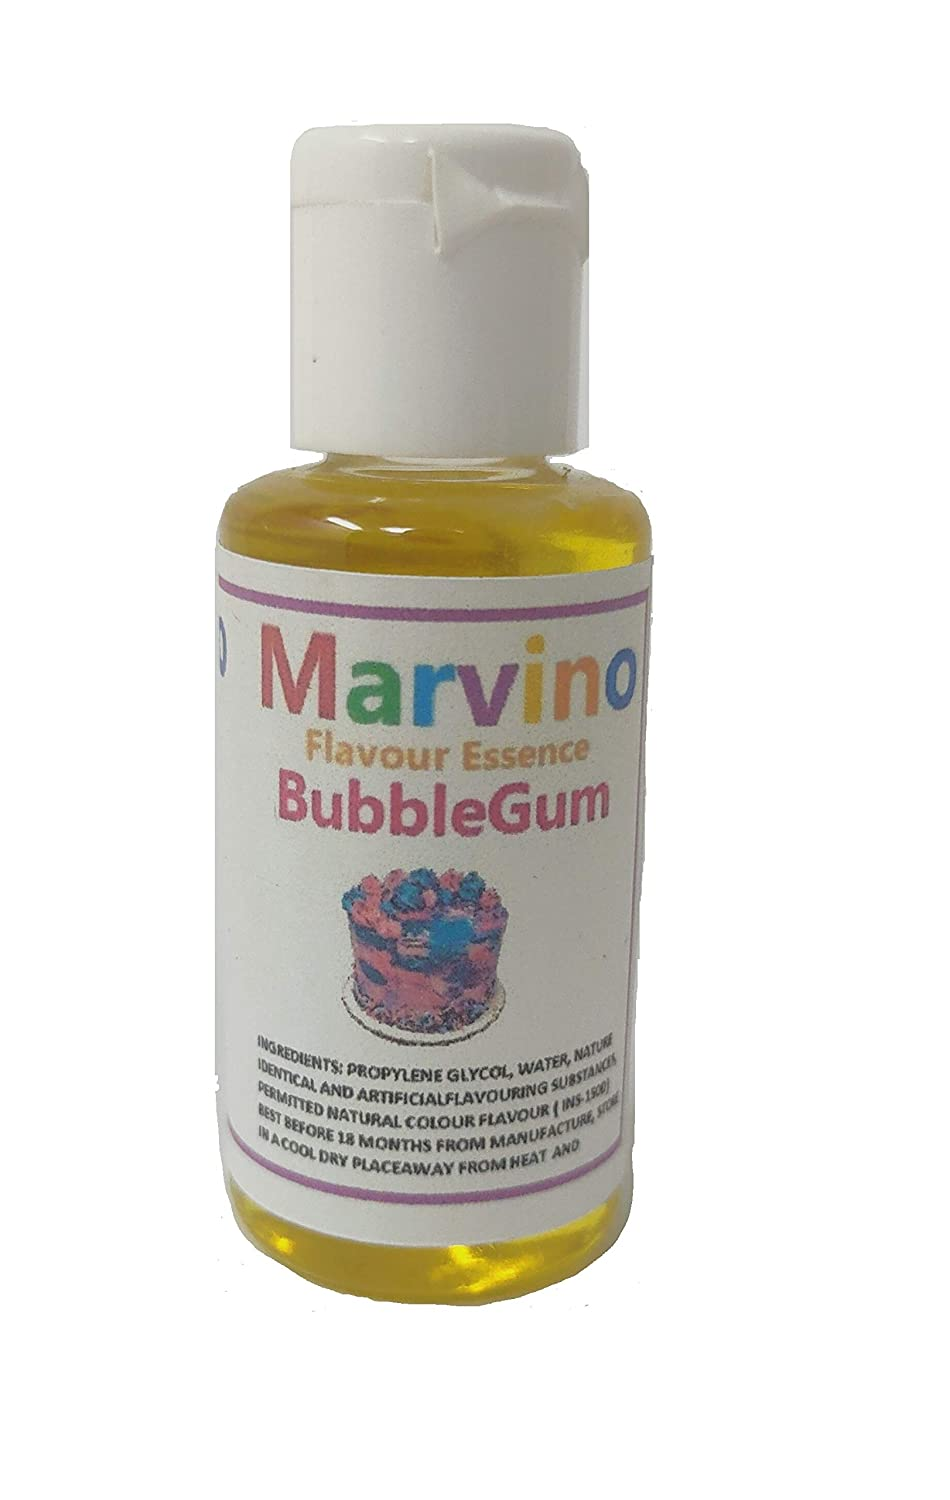 Marvino Rabdi Rasmalai BubbleGum Paan Flavours Extracts Essence For Cakes Sweets Pastries And Choclates